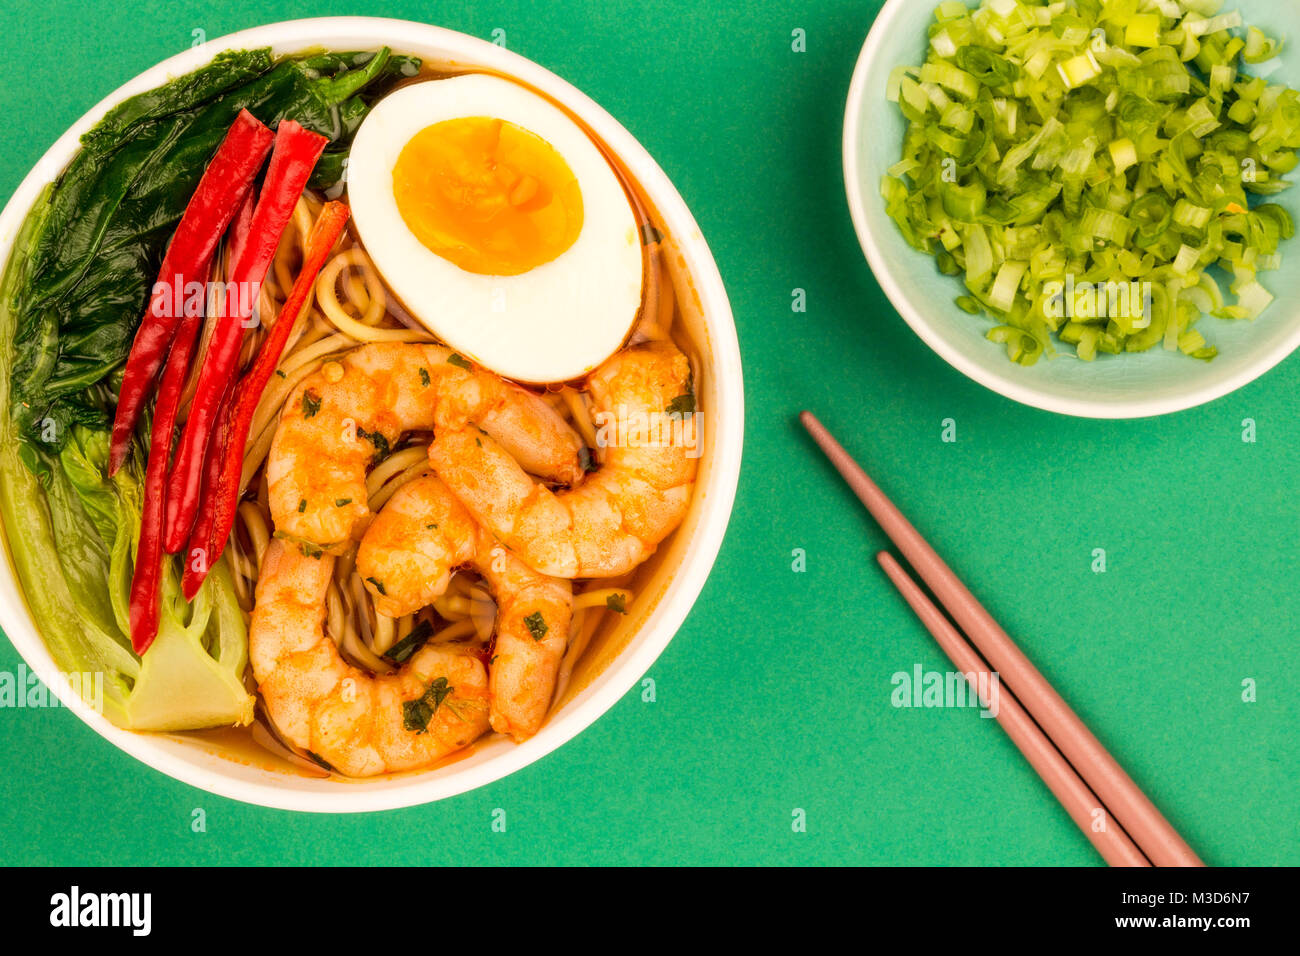 Japanese Style Prawn And Noodle Ramen Soup With Pak Choi And Chillies Against A Green Background - Stock Image